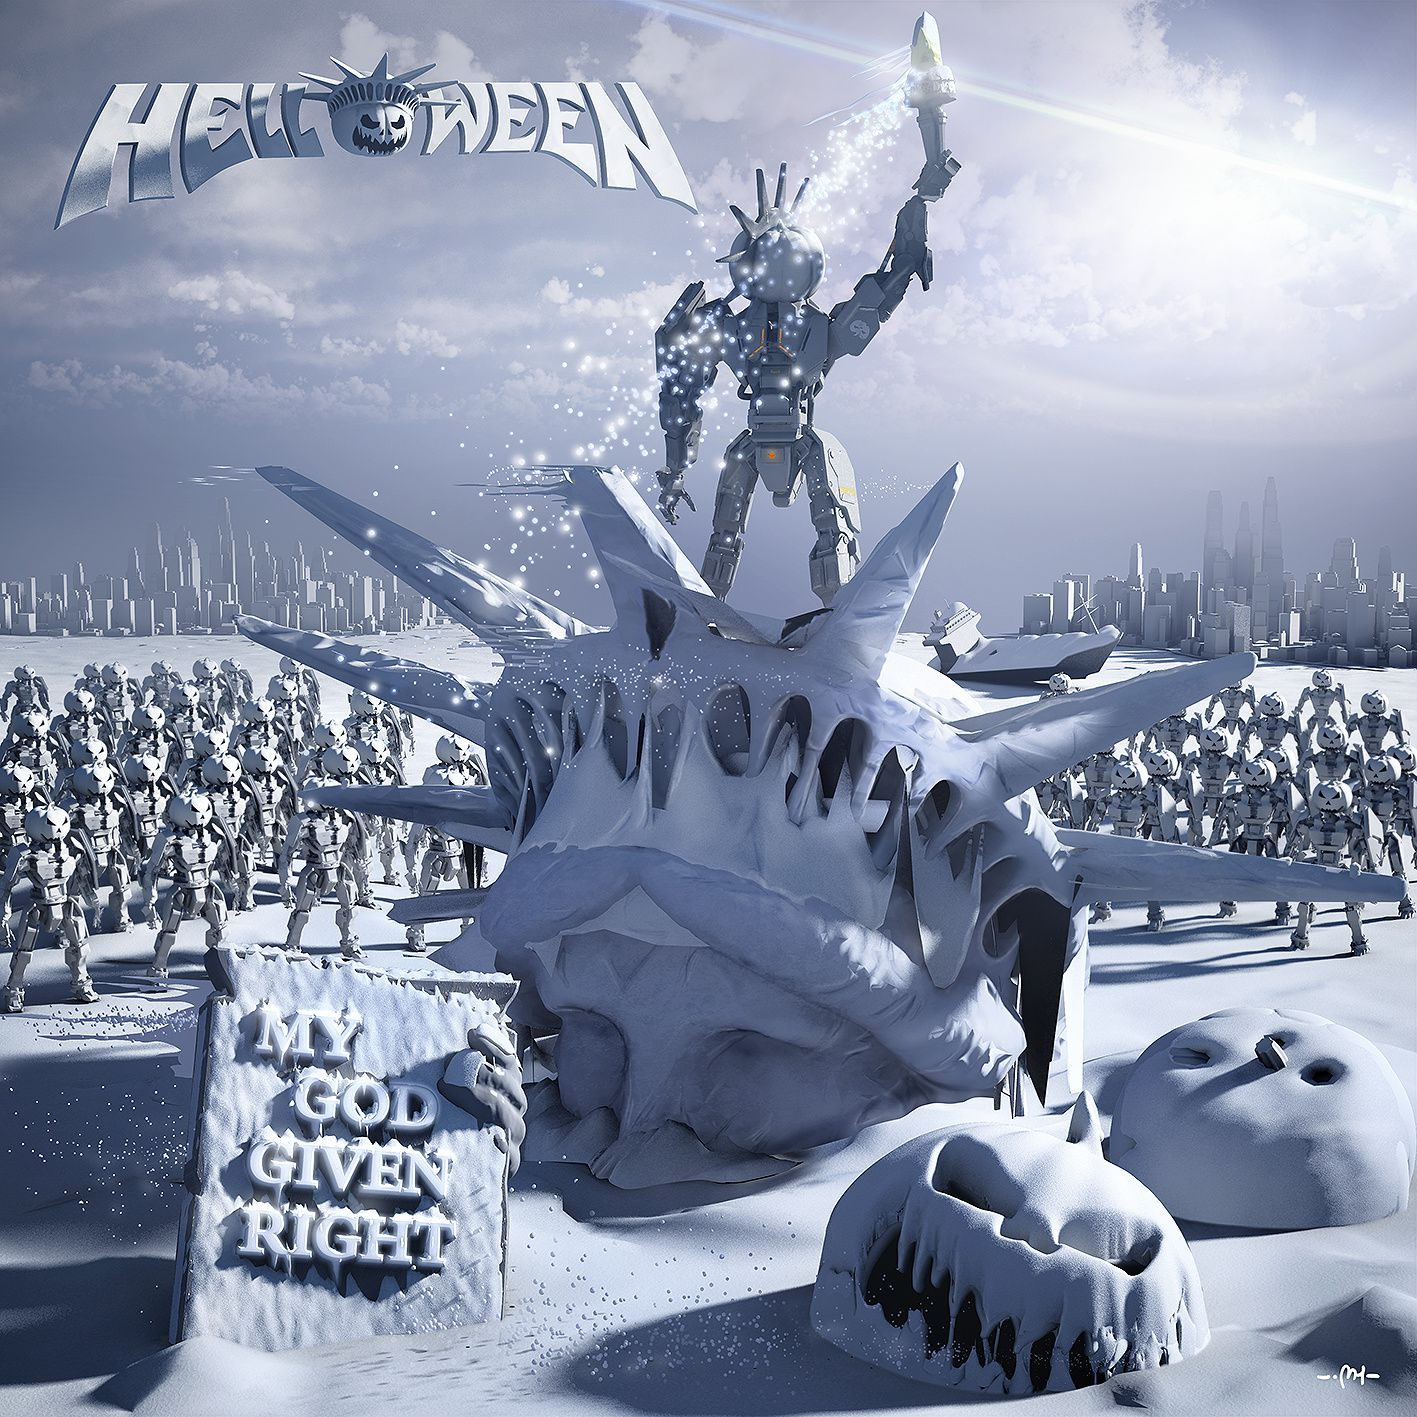 HELLOWEEN reveals cover for the new album